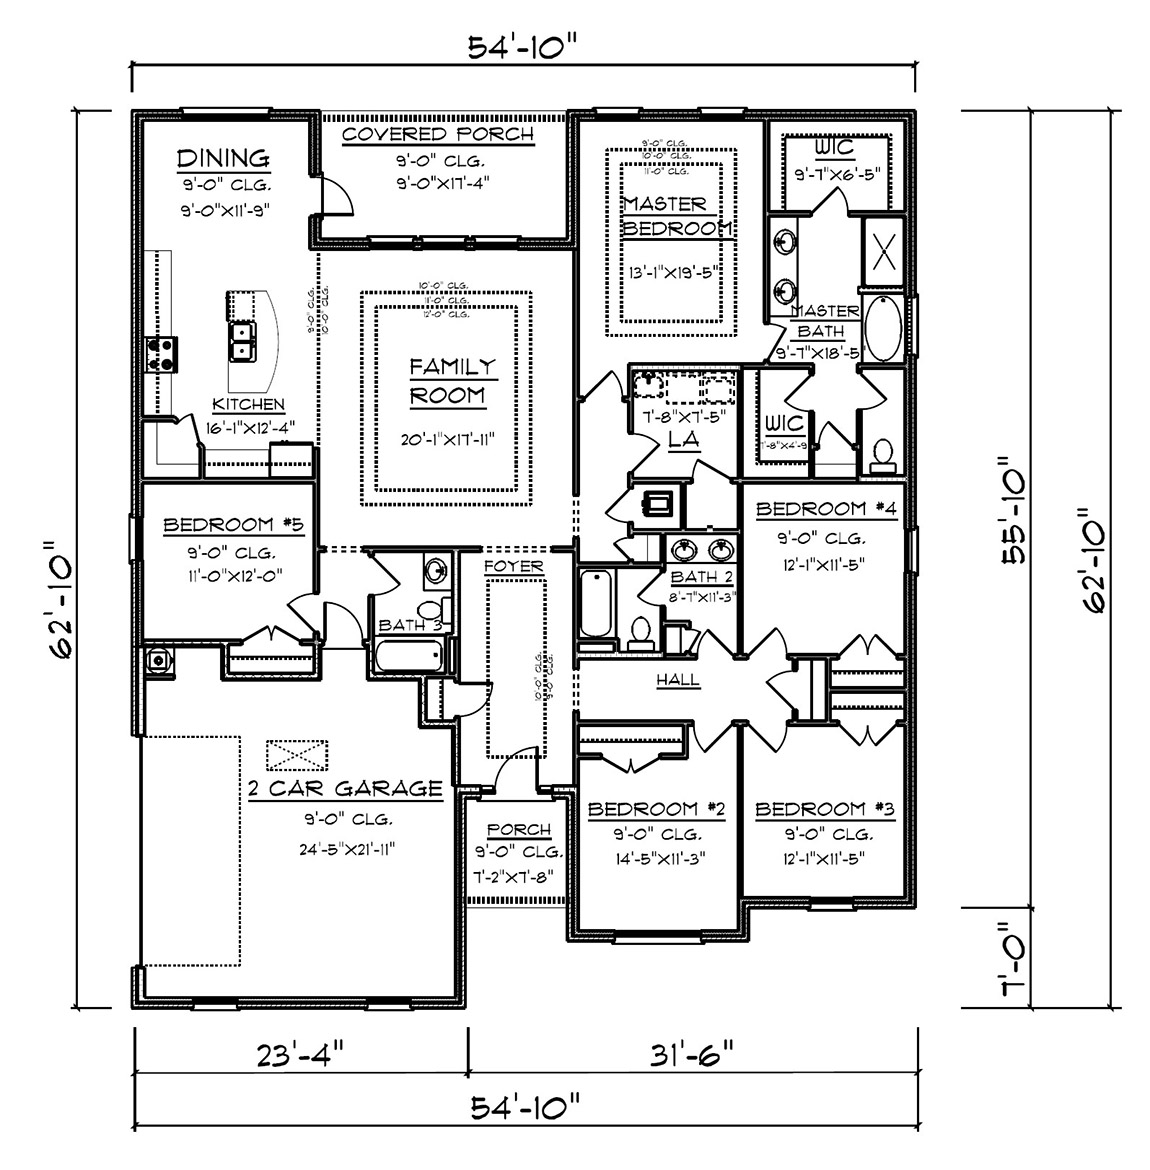 The Kaden - New Home Floor Plans